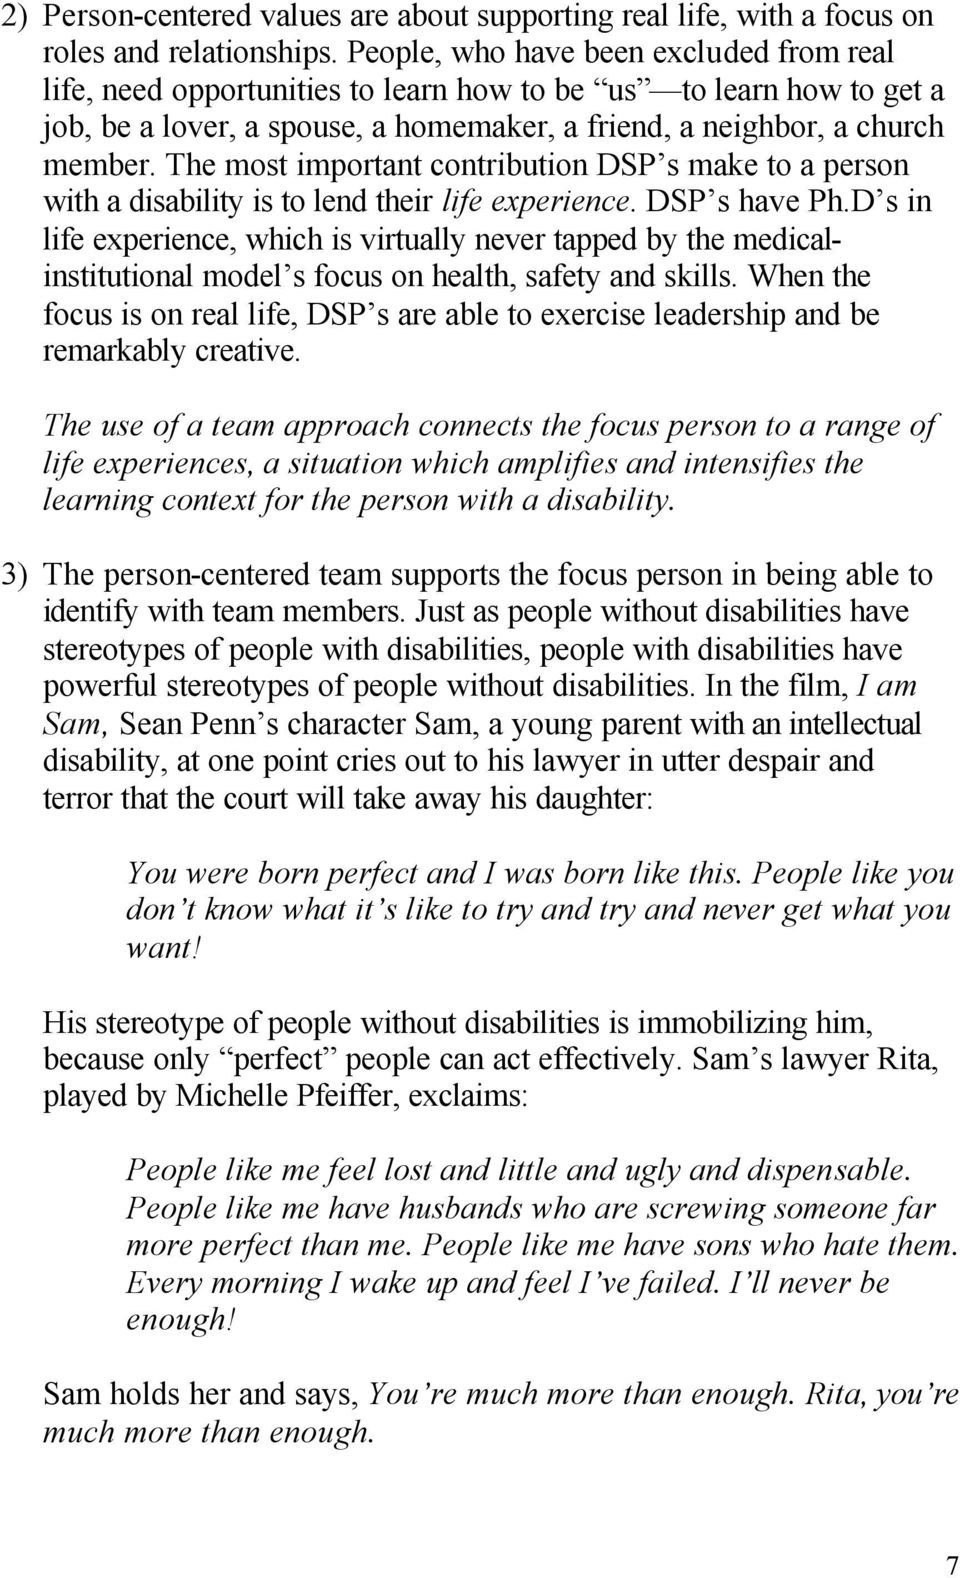 The most important contribution DSP s make to a person with a disability is to lend their life experience. DSP s have Ph.